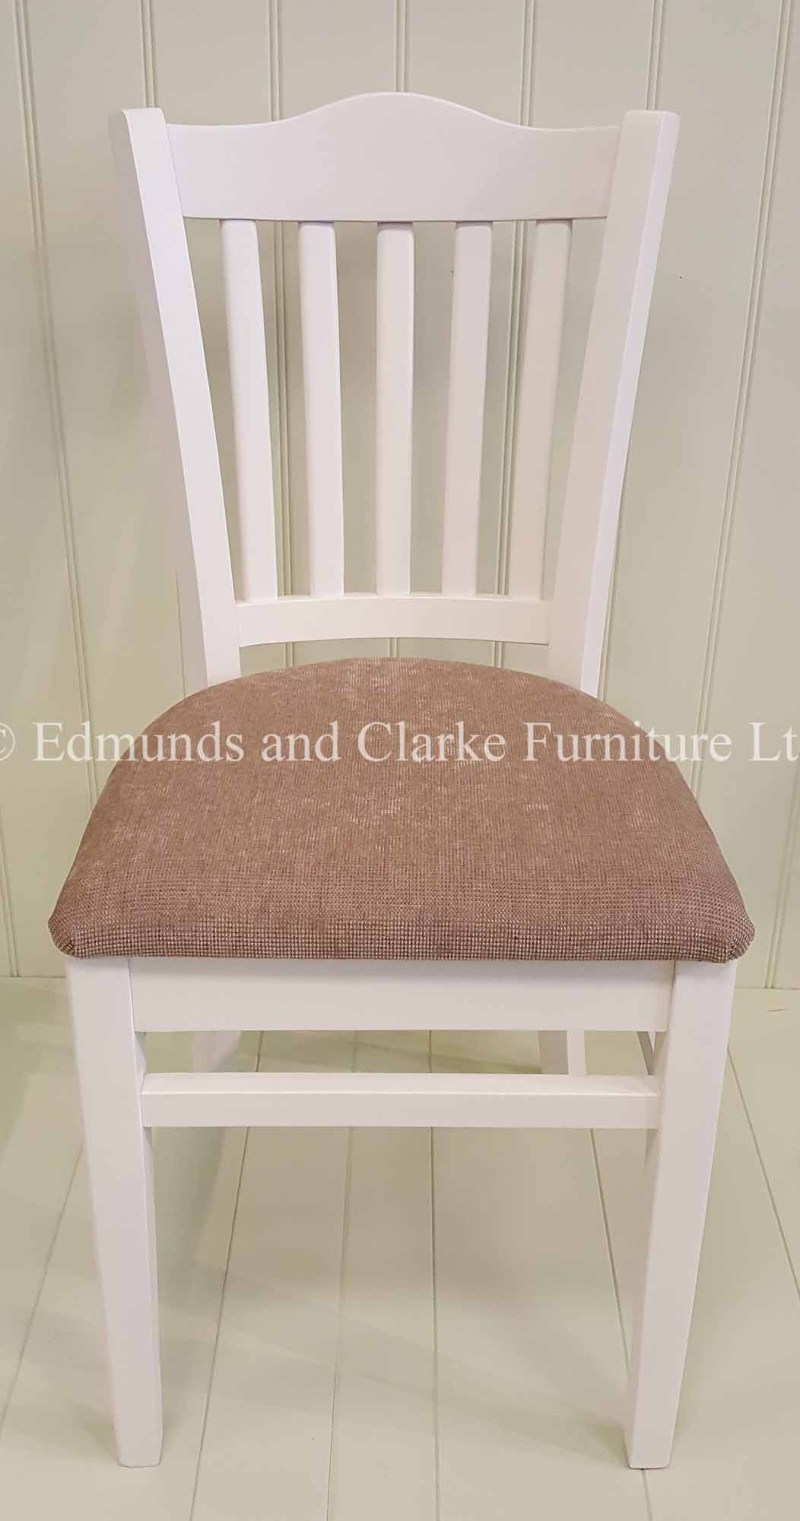 Stamford dining chair painted from our Edmunds collection